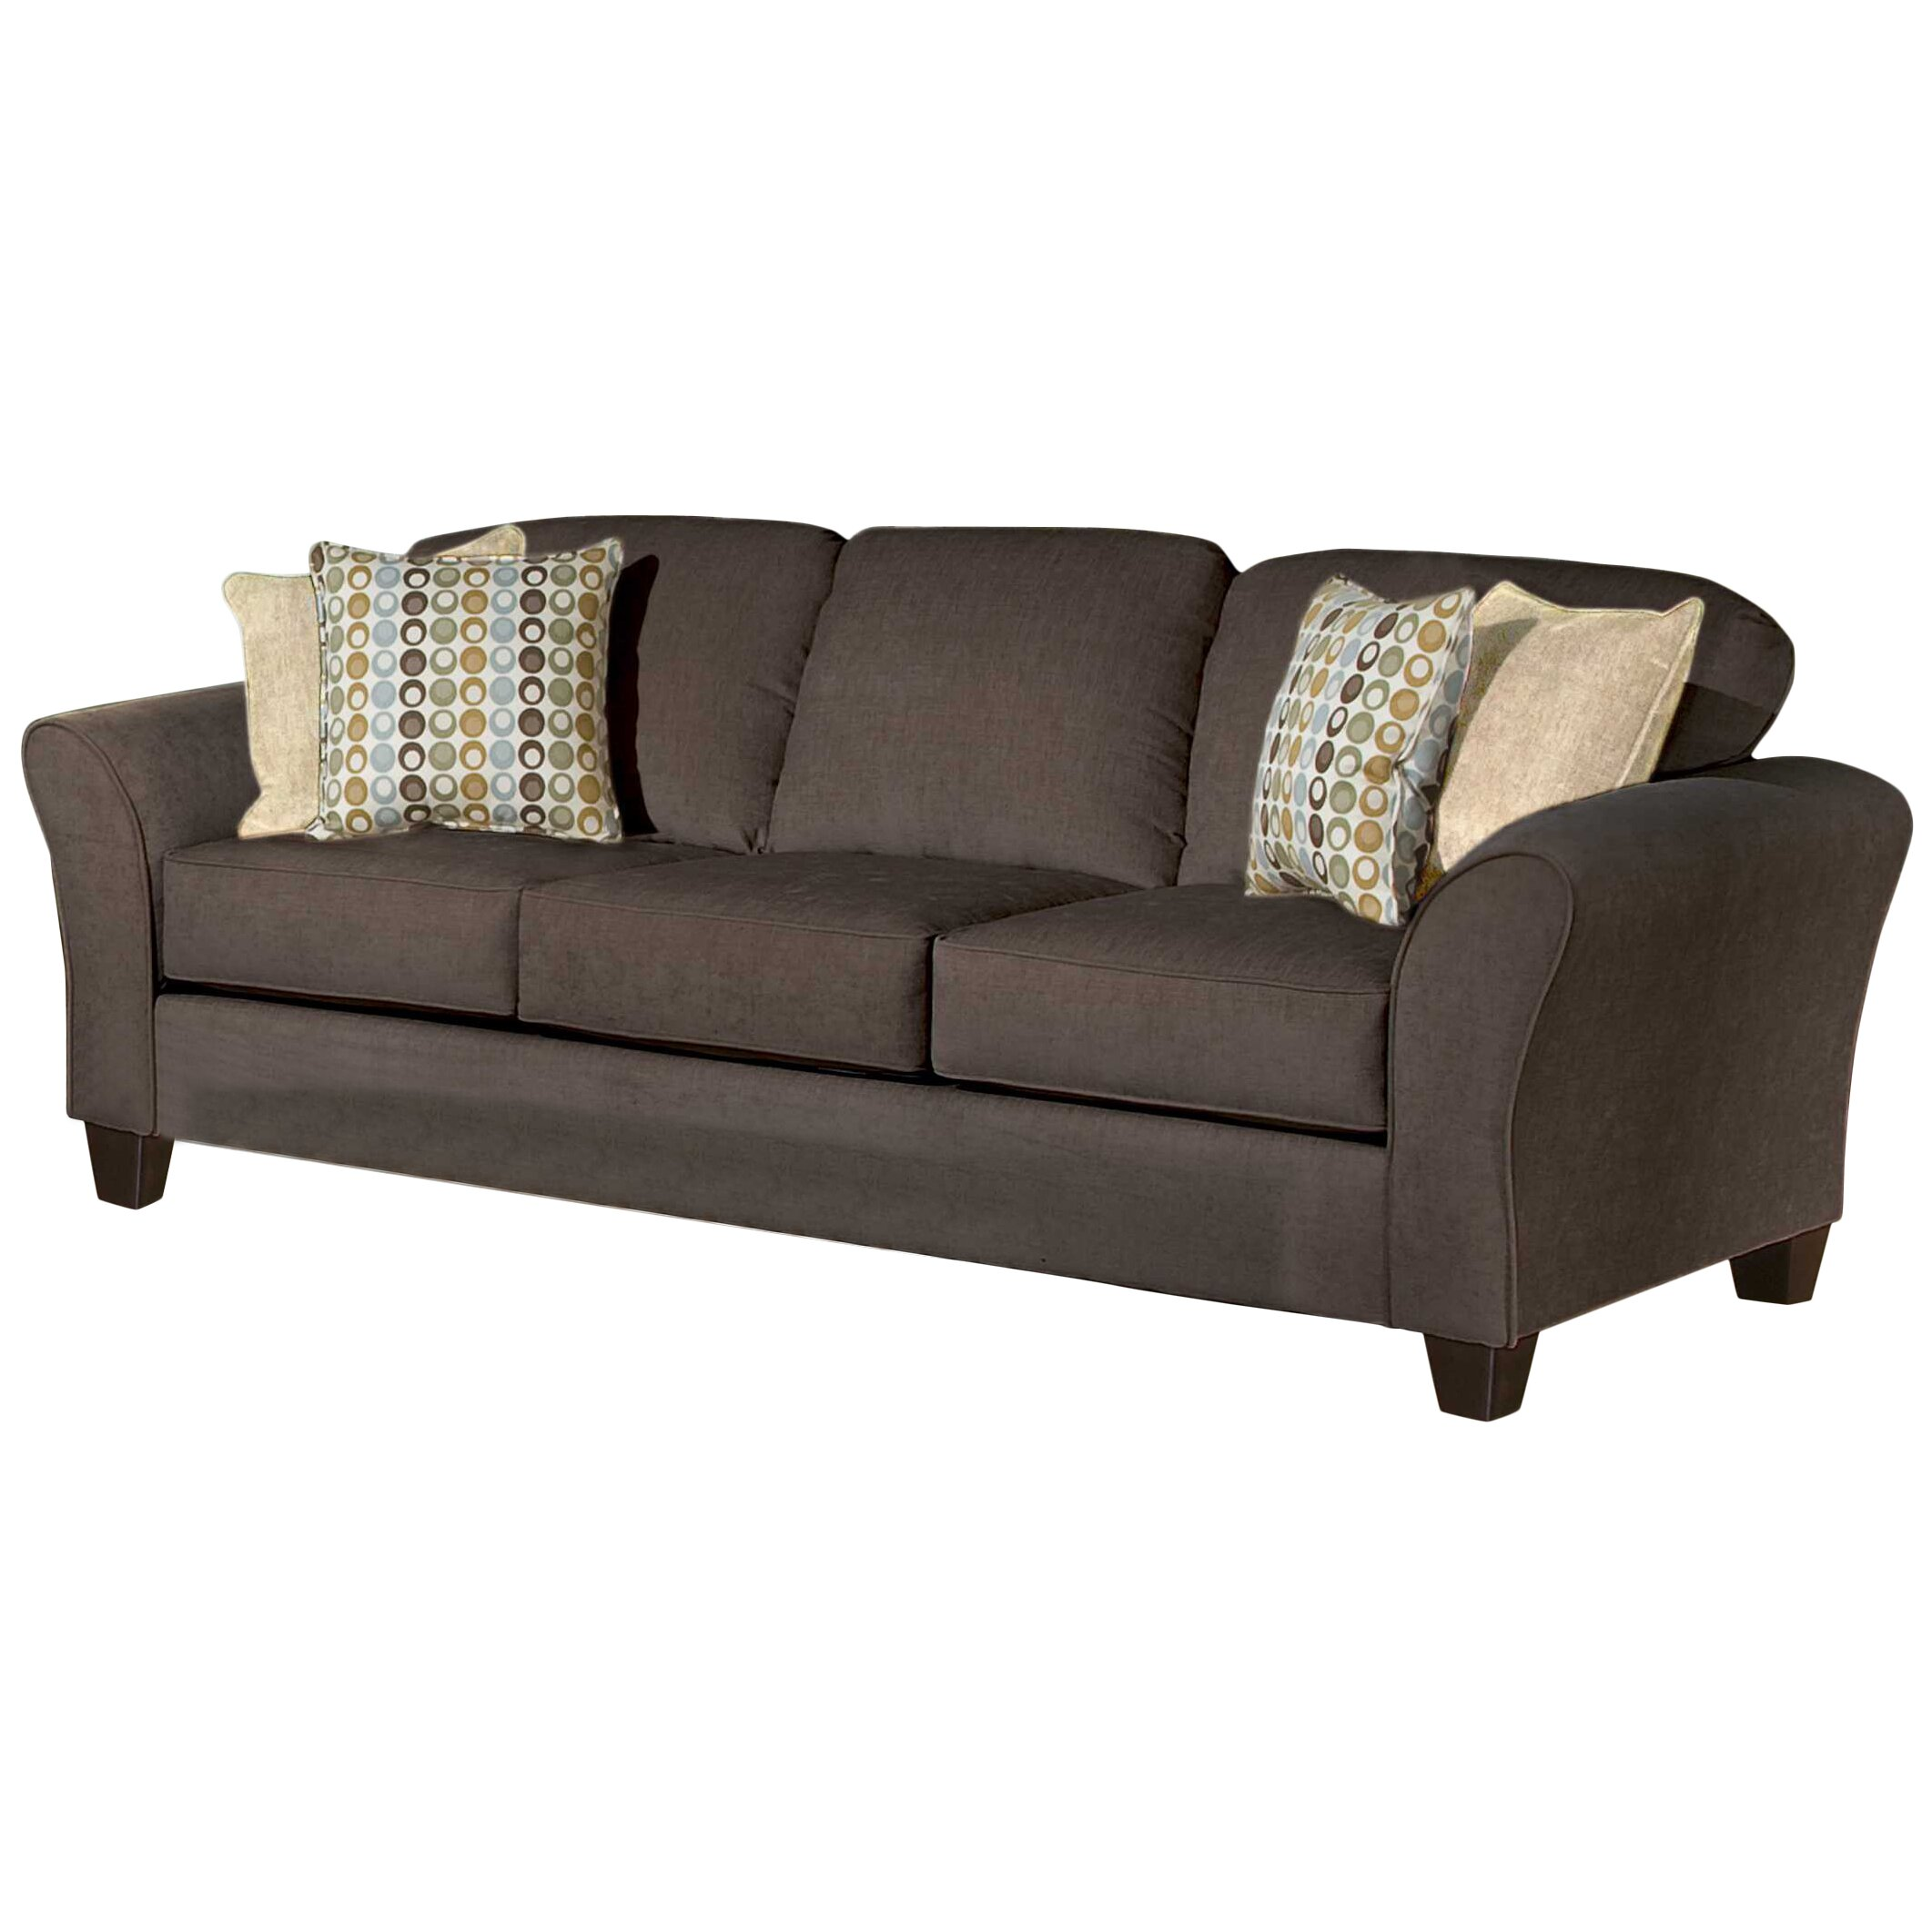 Three Posts Serta Upholstery Franklin Sofa Reviews